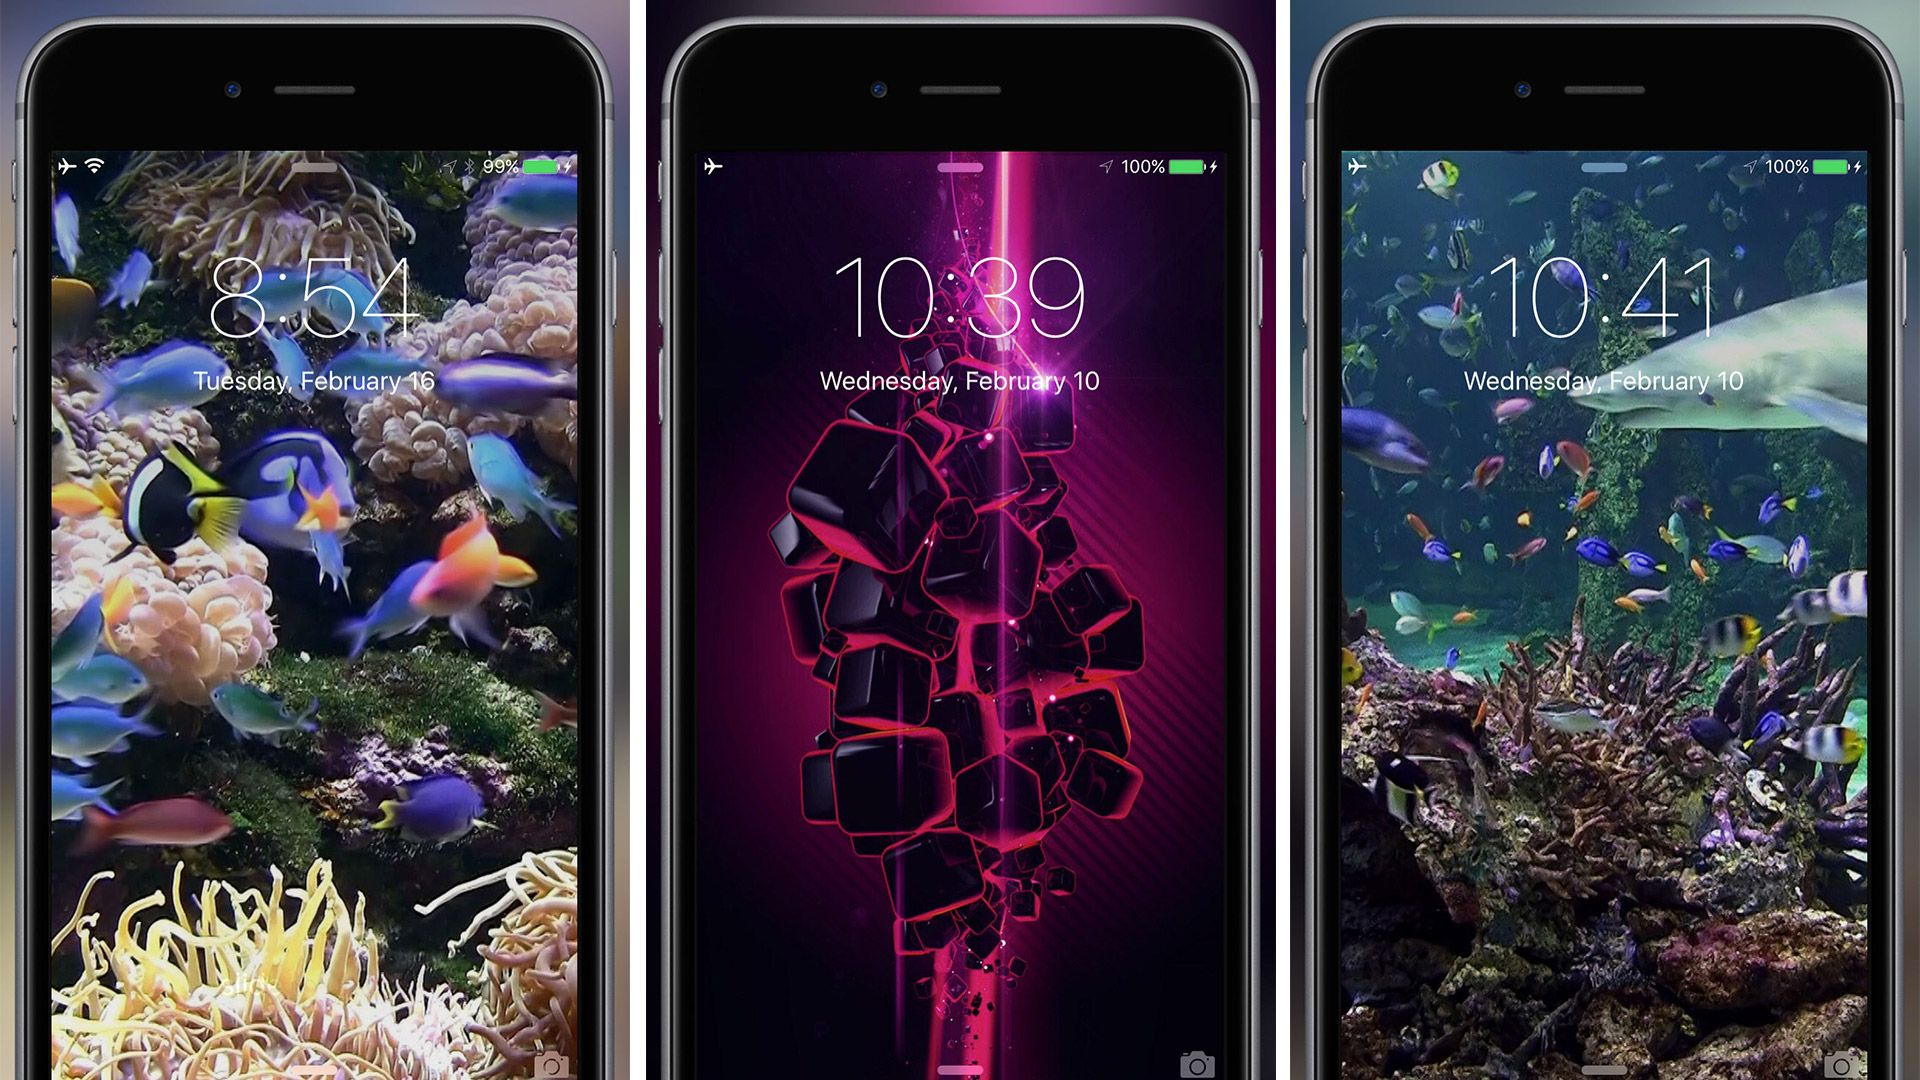 3d Wallpaper App posted by Samantha Simpson